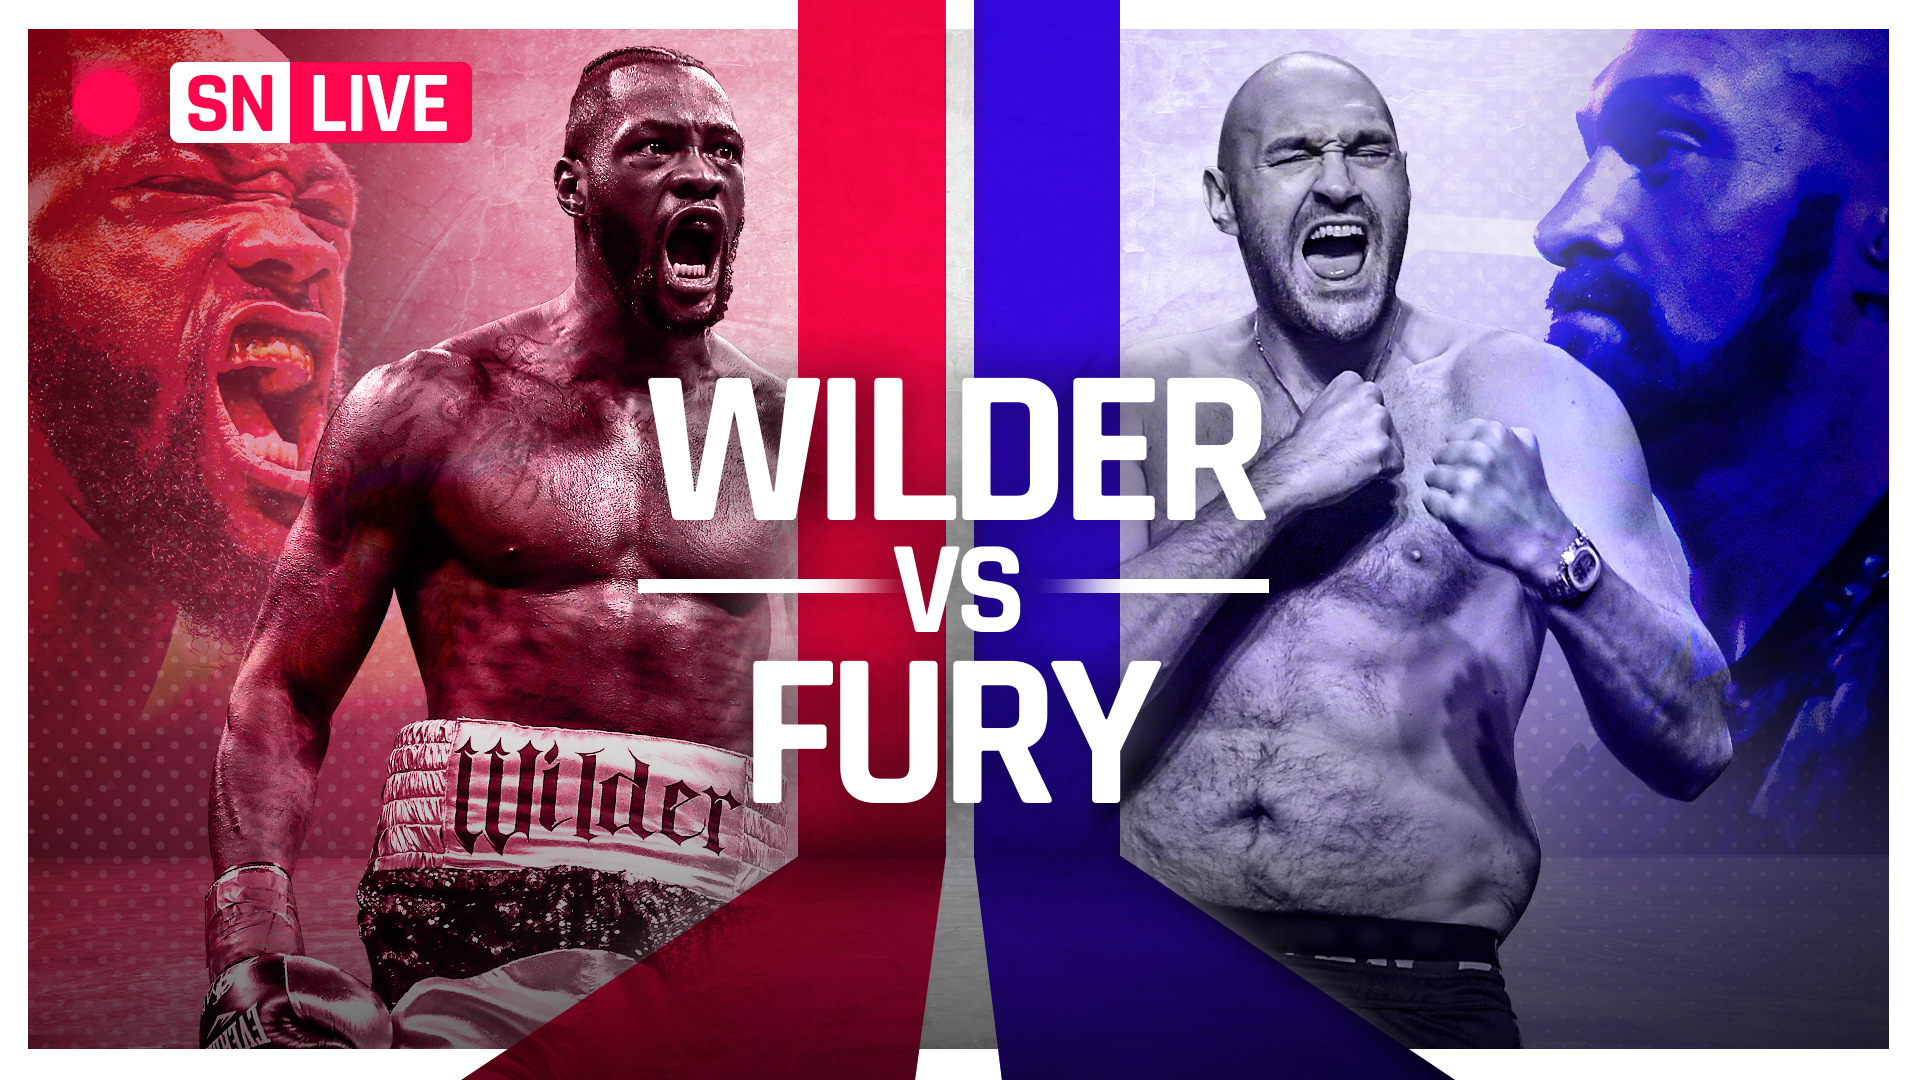 Deontay Wilder vs. Tyson Fury 2 live updates, fight results, highlights from full card - sporting news